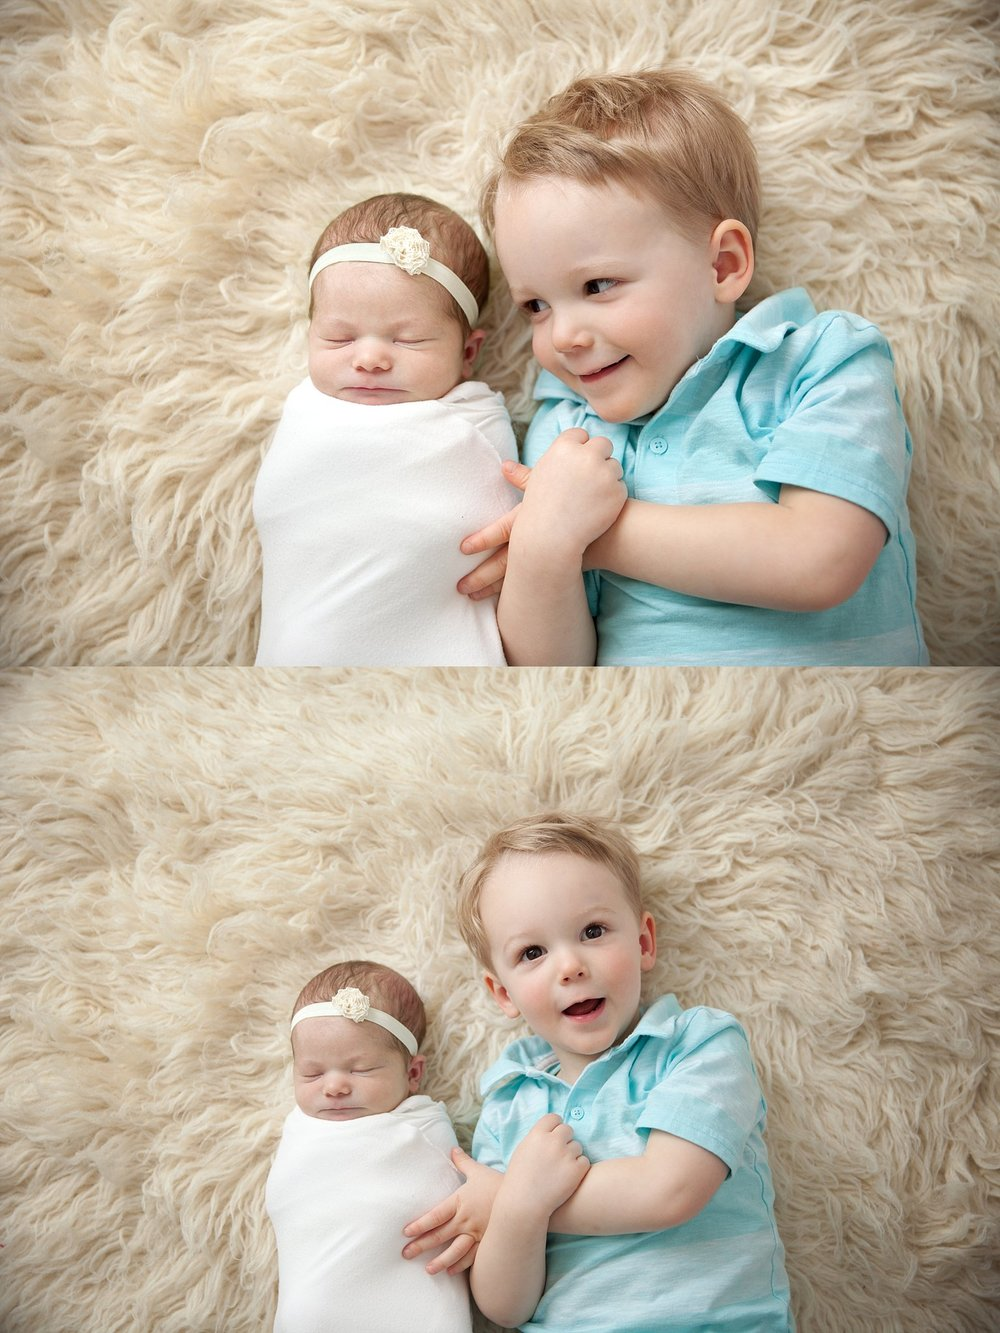 A photograph of a newborn baby girl with her older brother. Photographed at Rachael Little Photography's studio in Woodstock, Ontario.